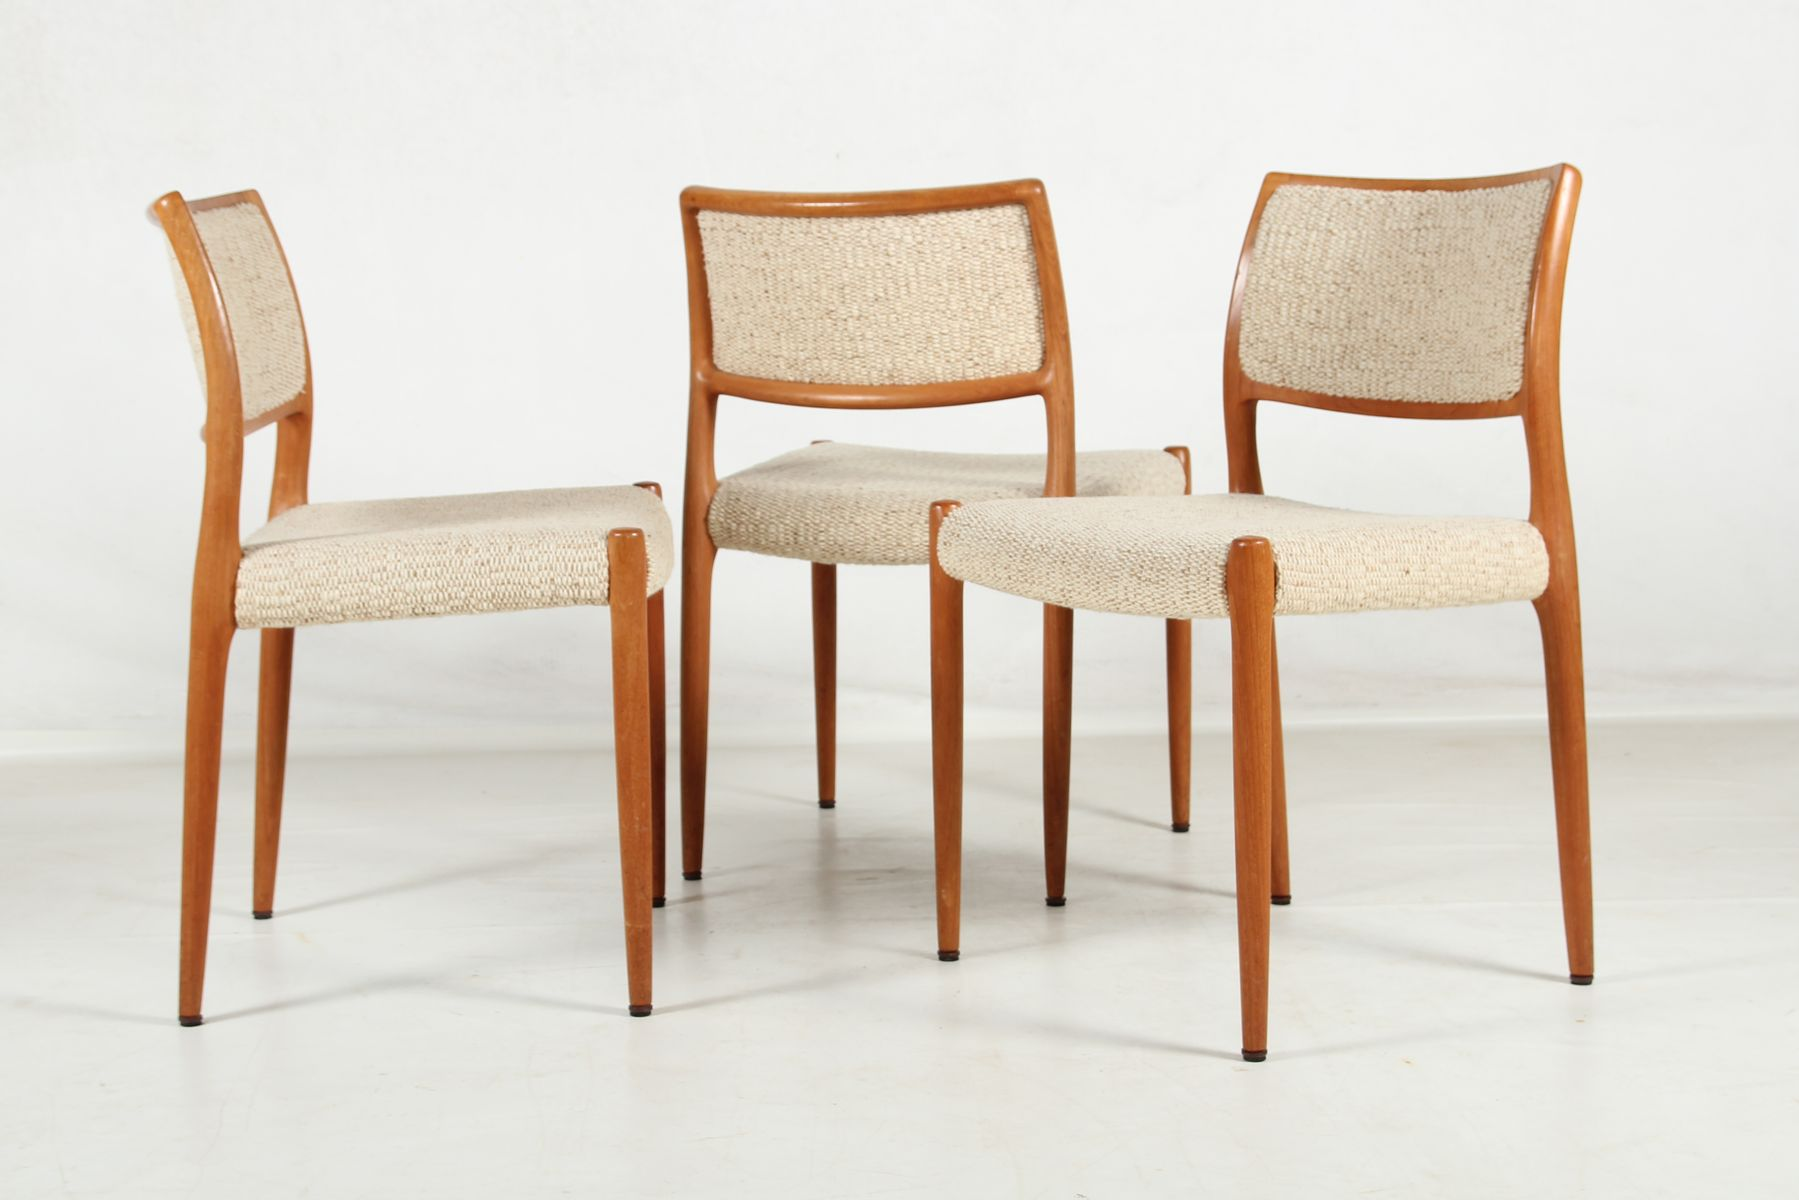 Model 80 teak chairs by niels o m ller for j l m llers for 80s furniture for sale